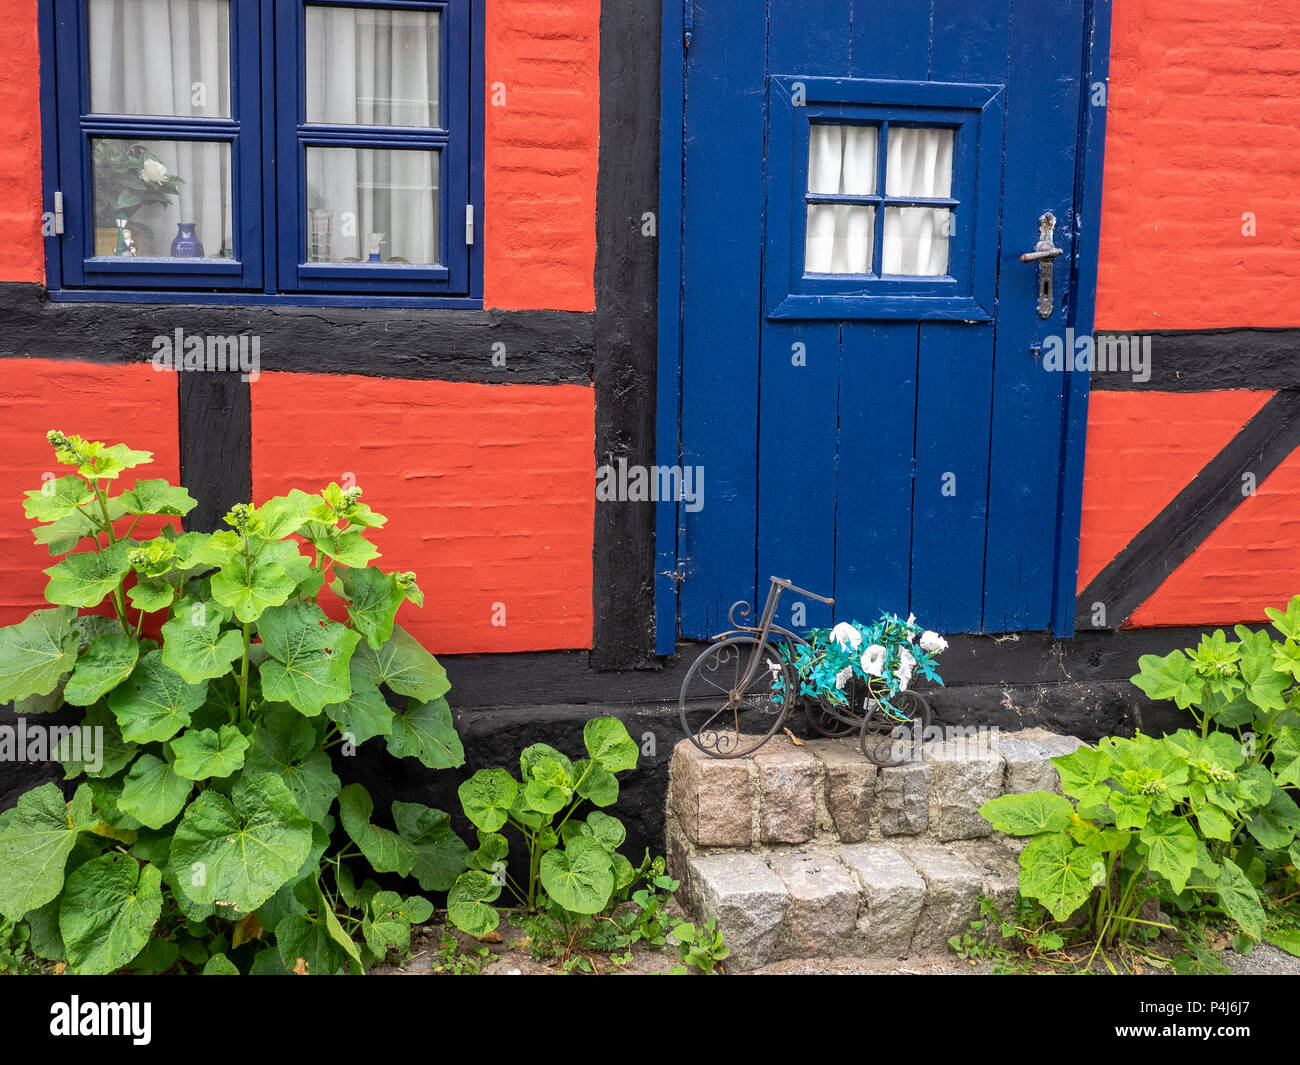 Colorful blue, red and black cottage in Marstal, Aero Island, Denmark - Stock Image